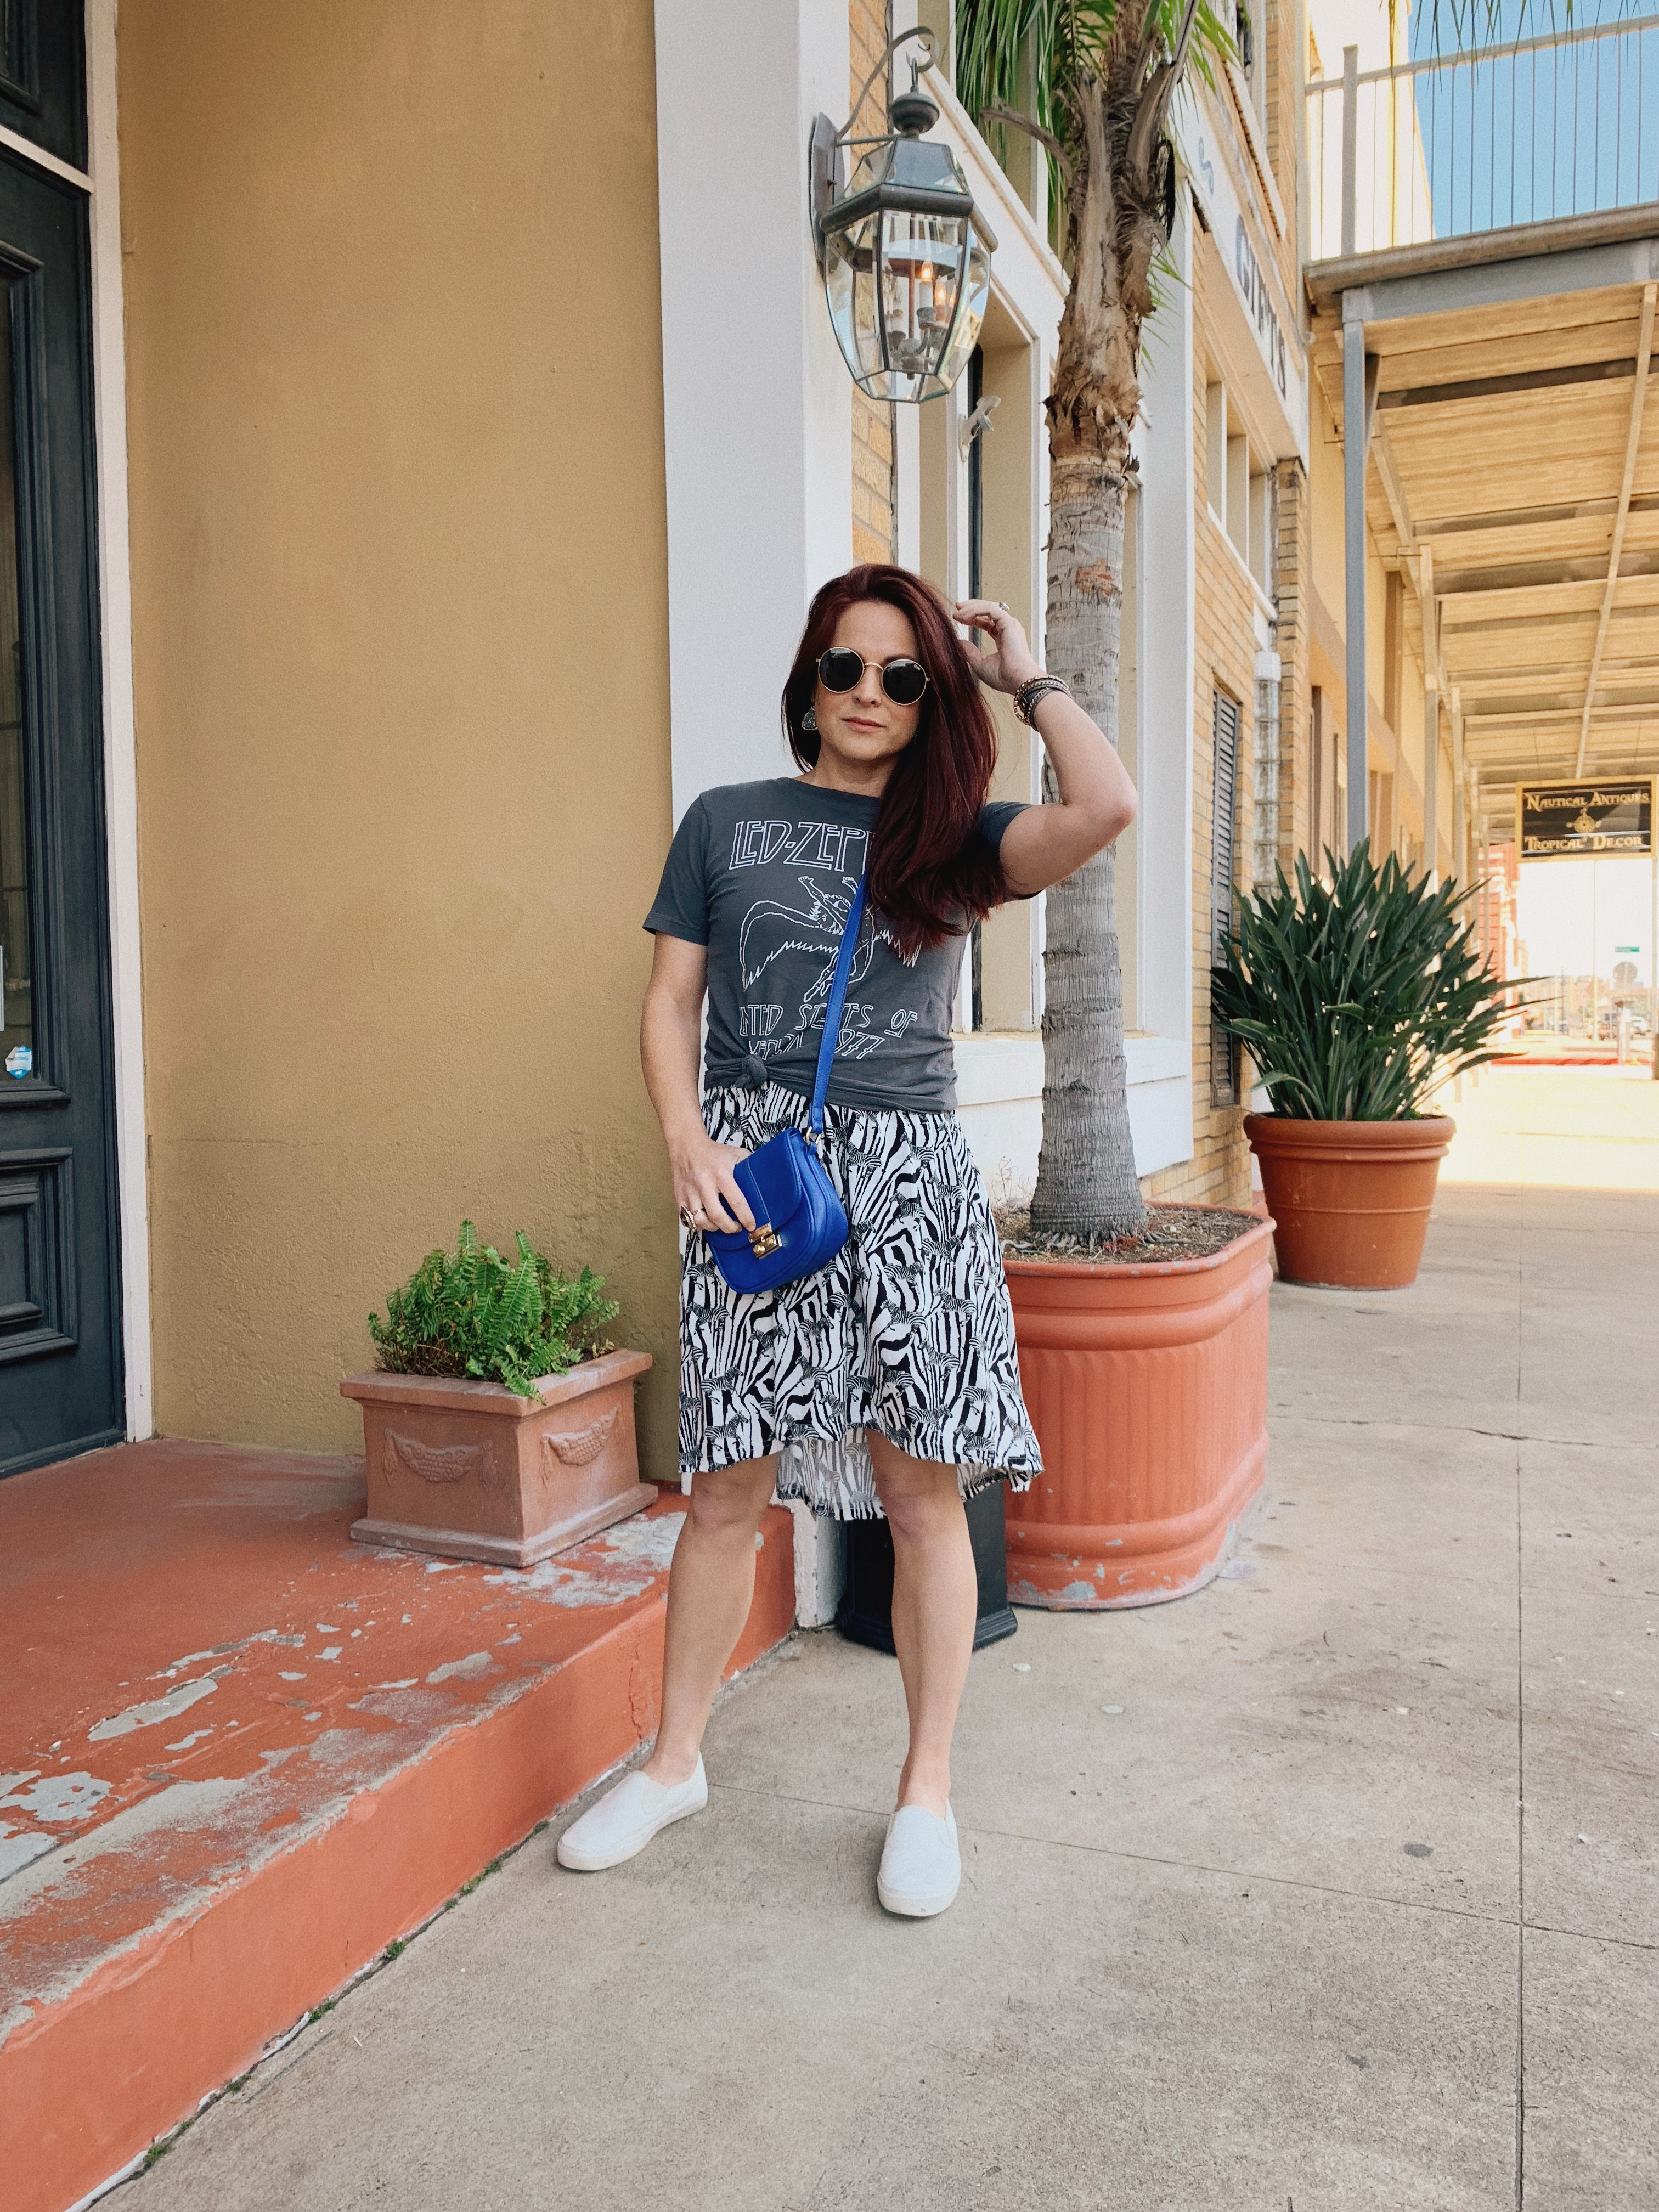 band tee outfits, animal print styling, sneaker outfits, quay retro sunglasses